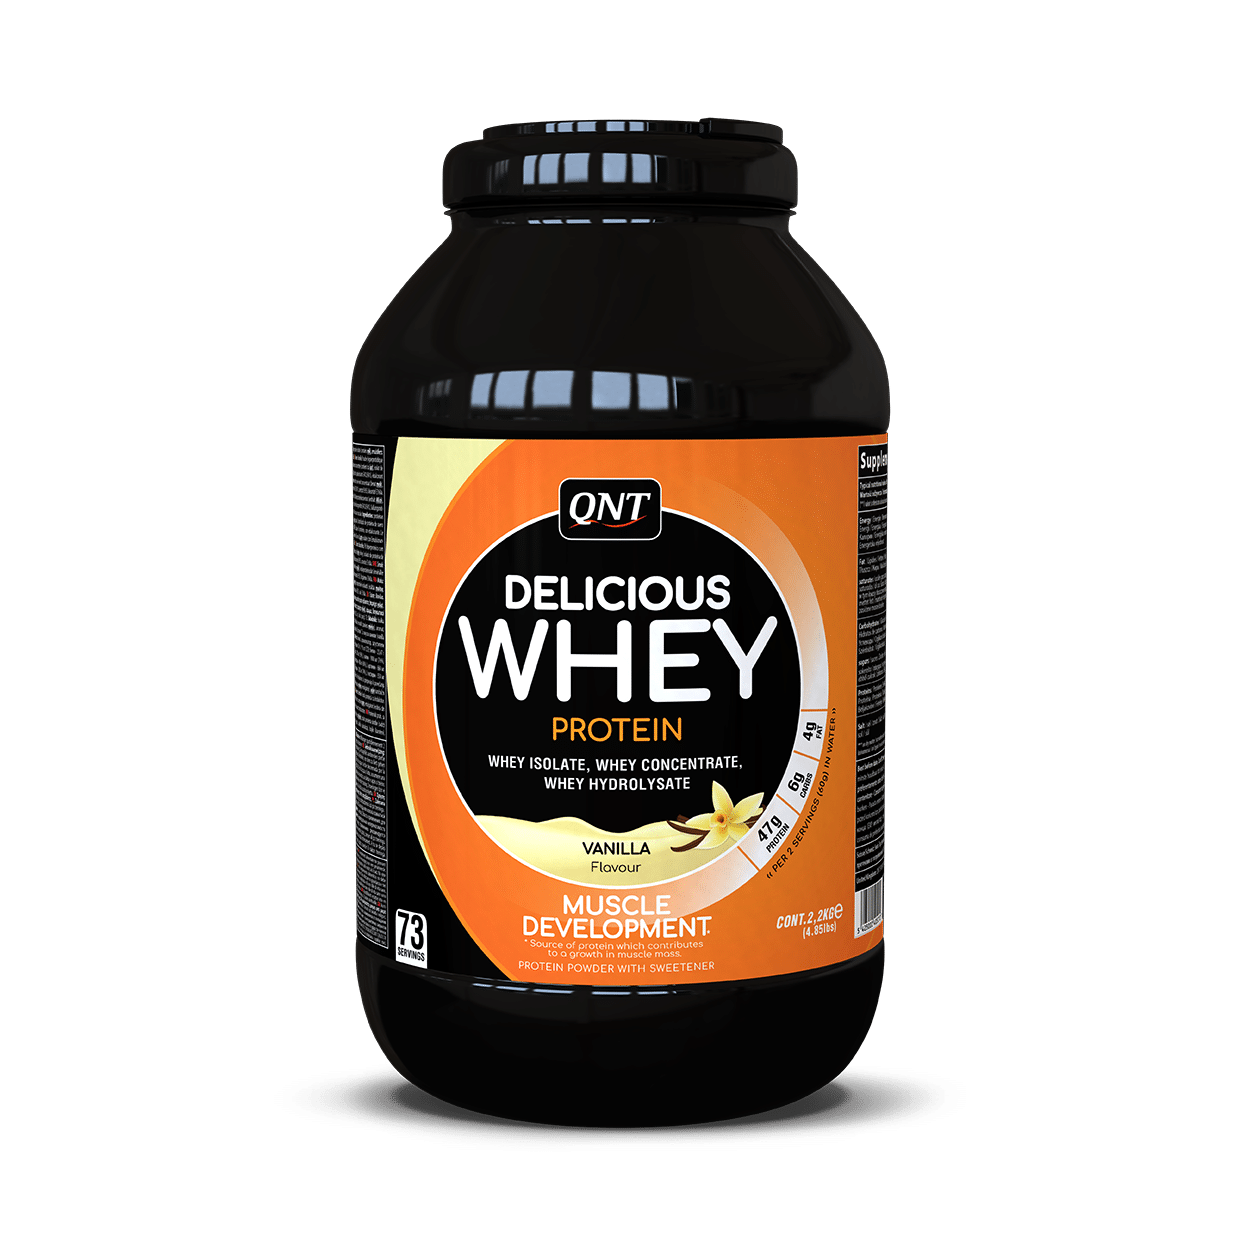 Delicious Whey Protein Powder MIX FLAVOUR 2 , 2 kg